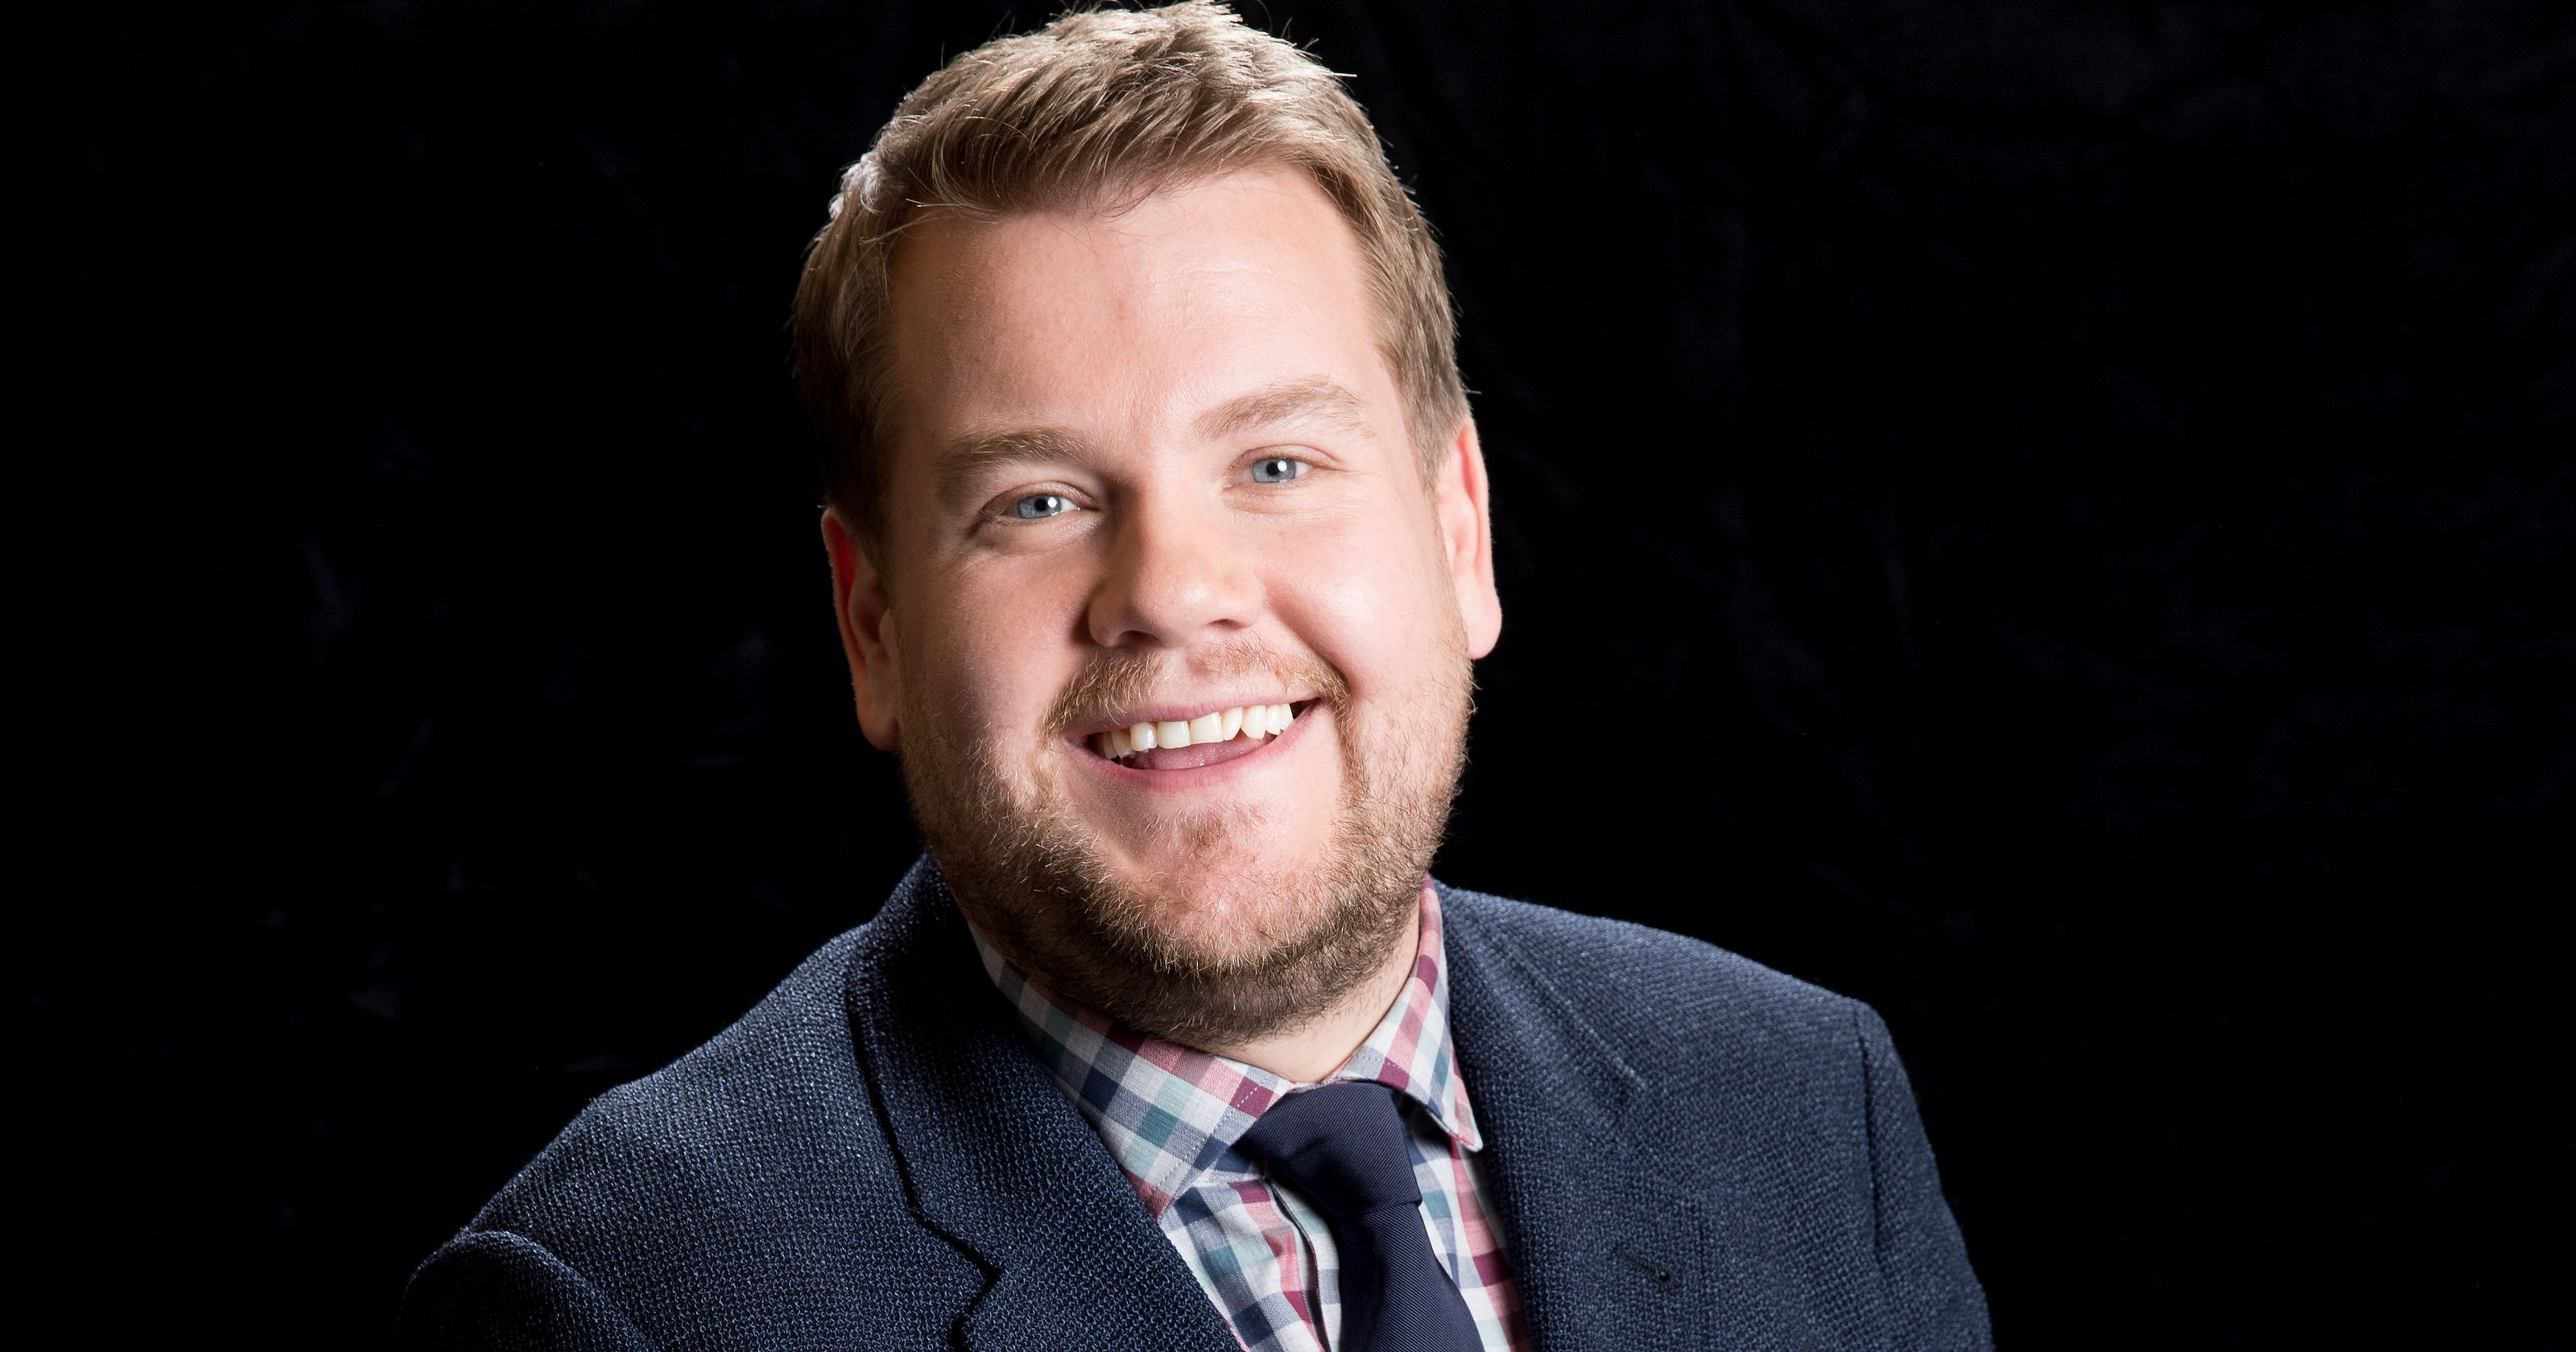 Pictures Of James Corden